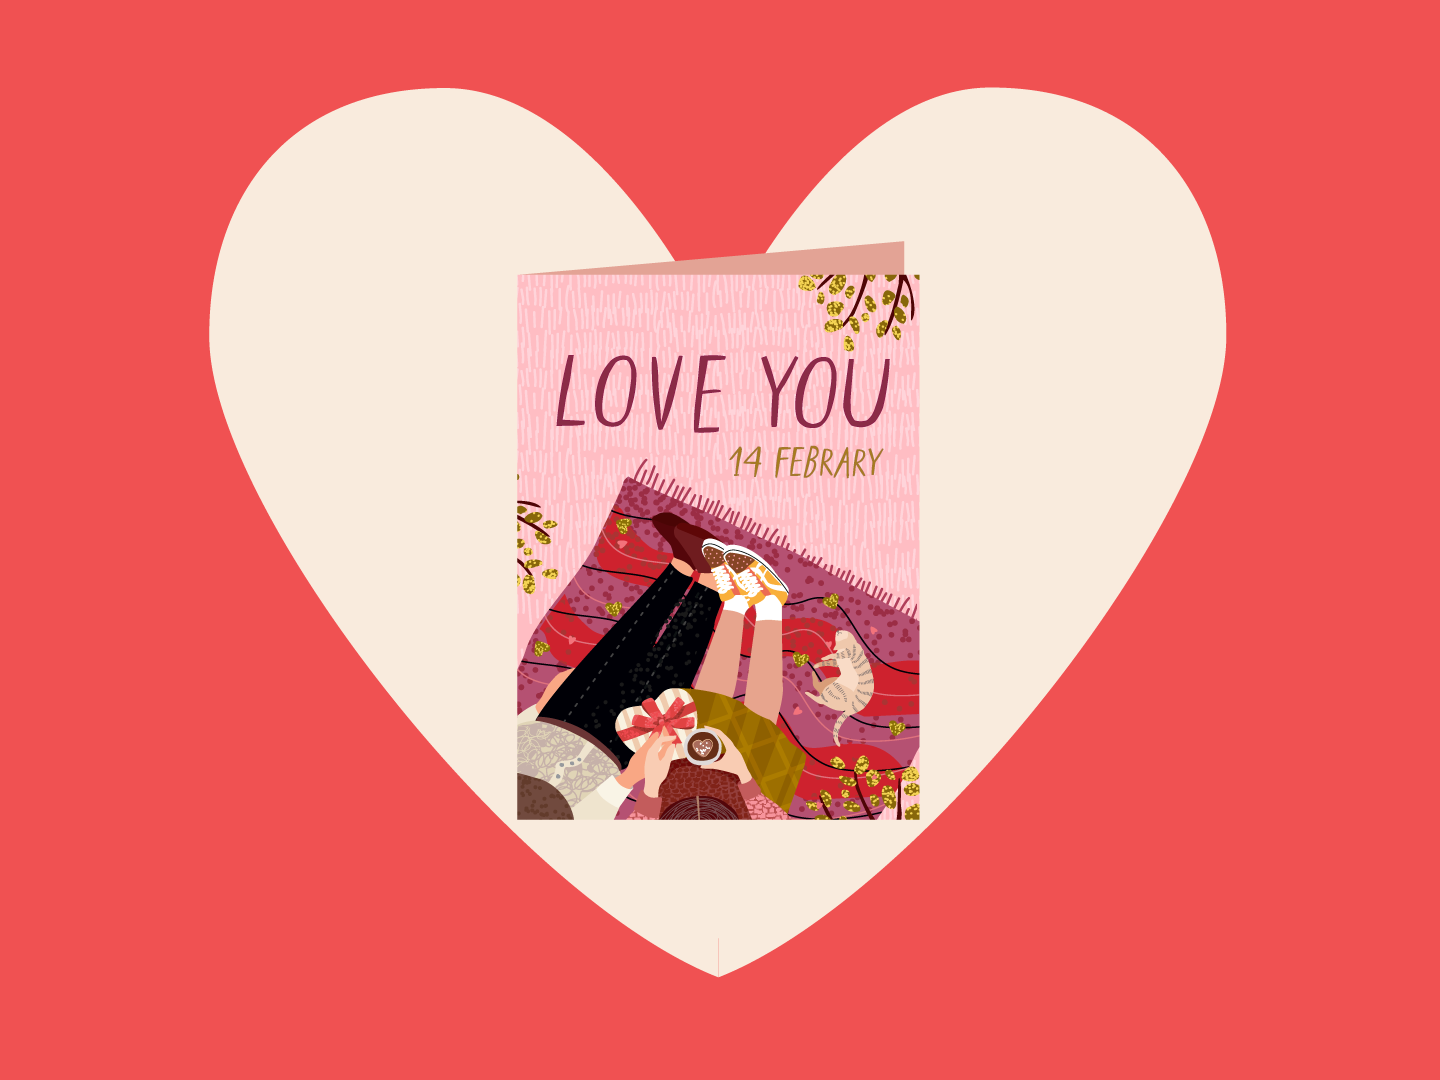 Just because I LOVE YOU card anniversary friendship card valentine/'s day lover card just because card sweetheart boyfriend girlfriend cards